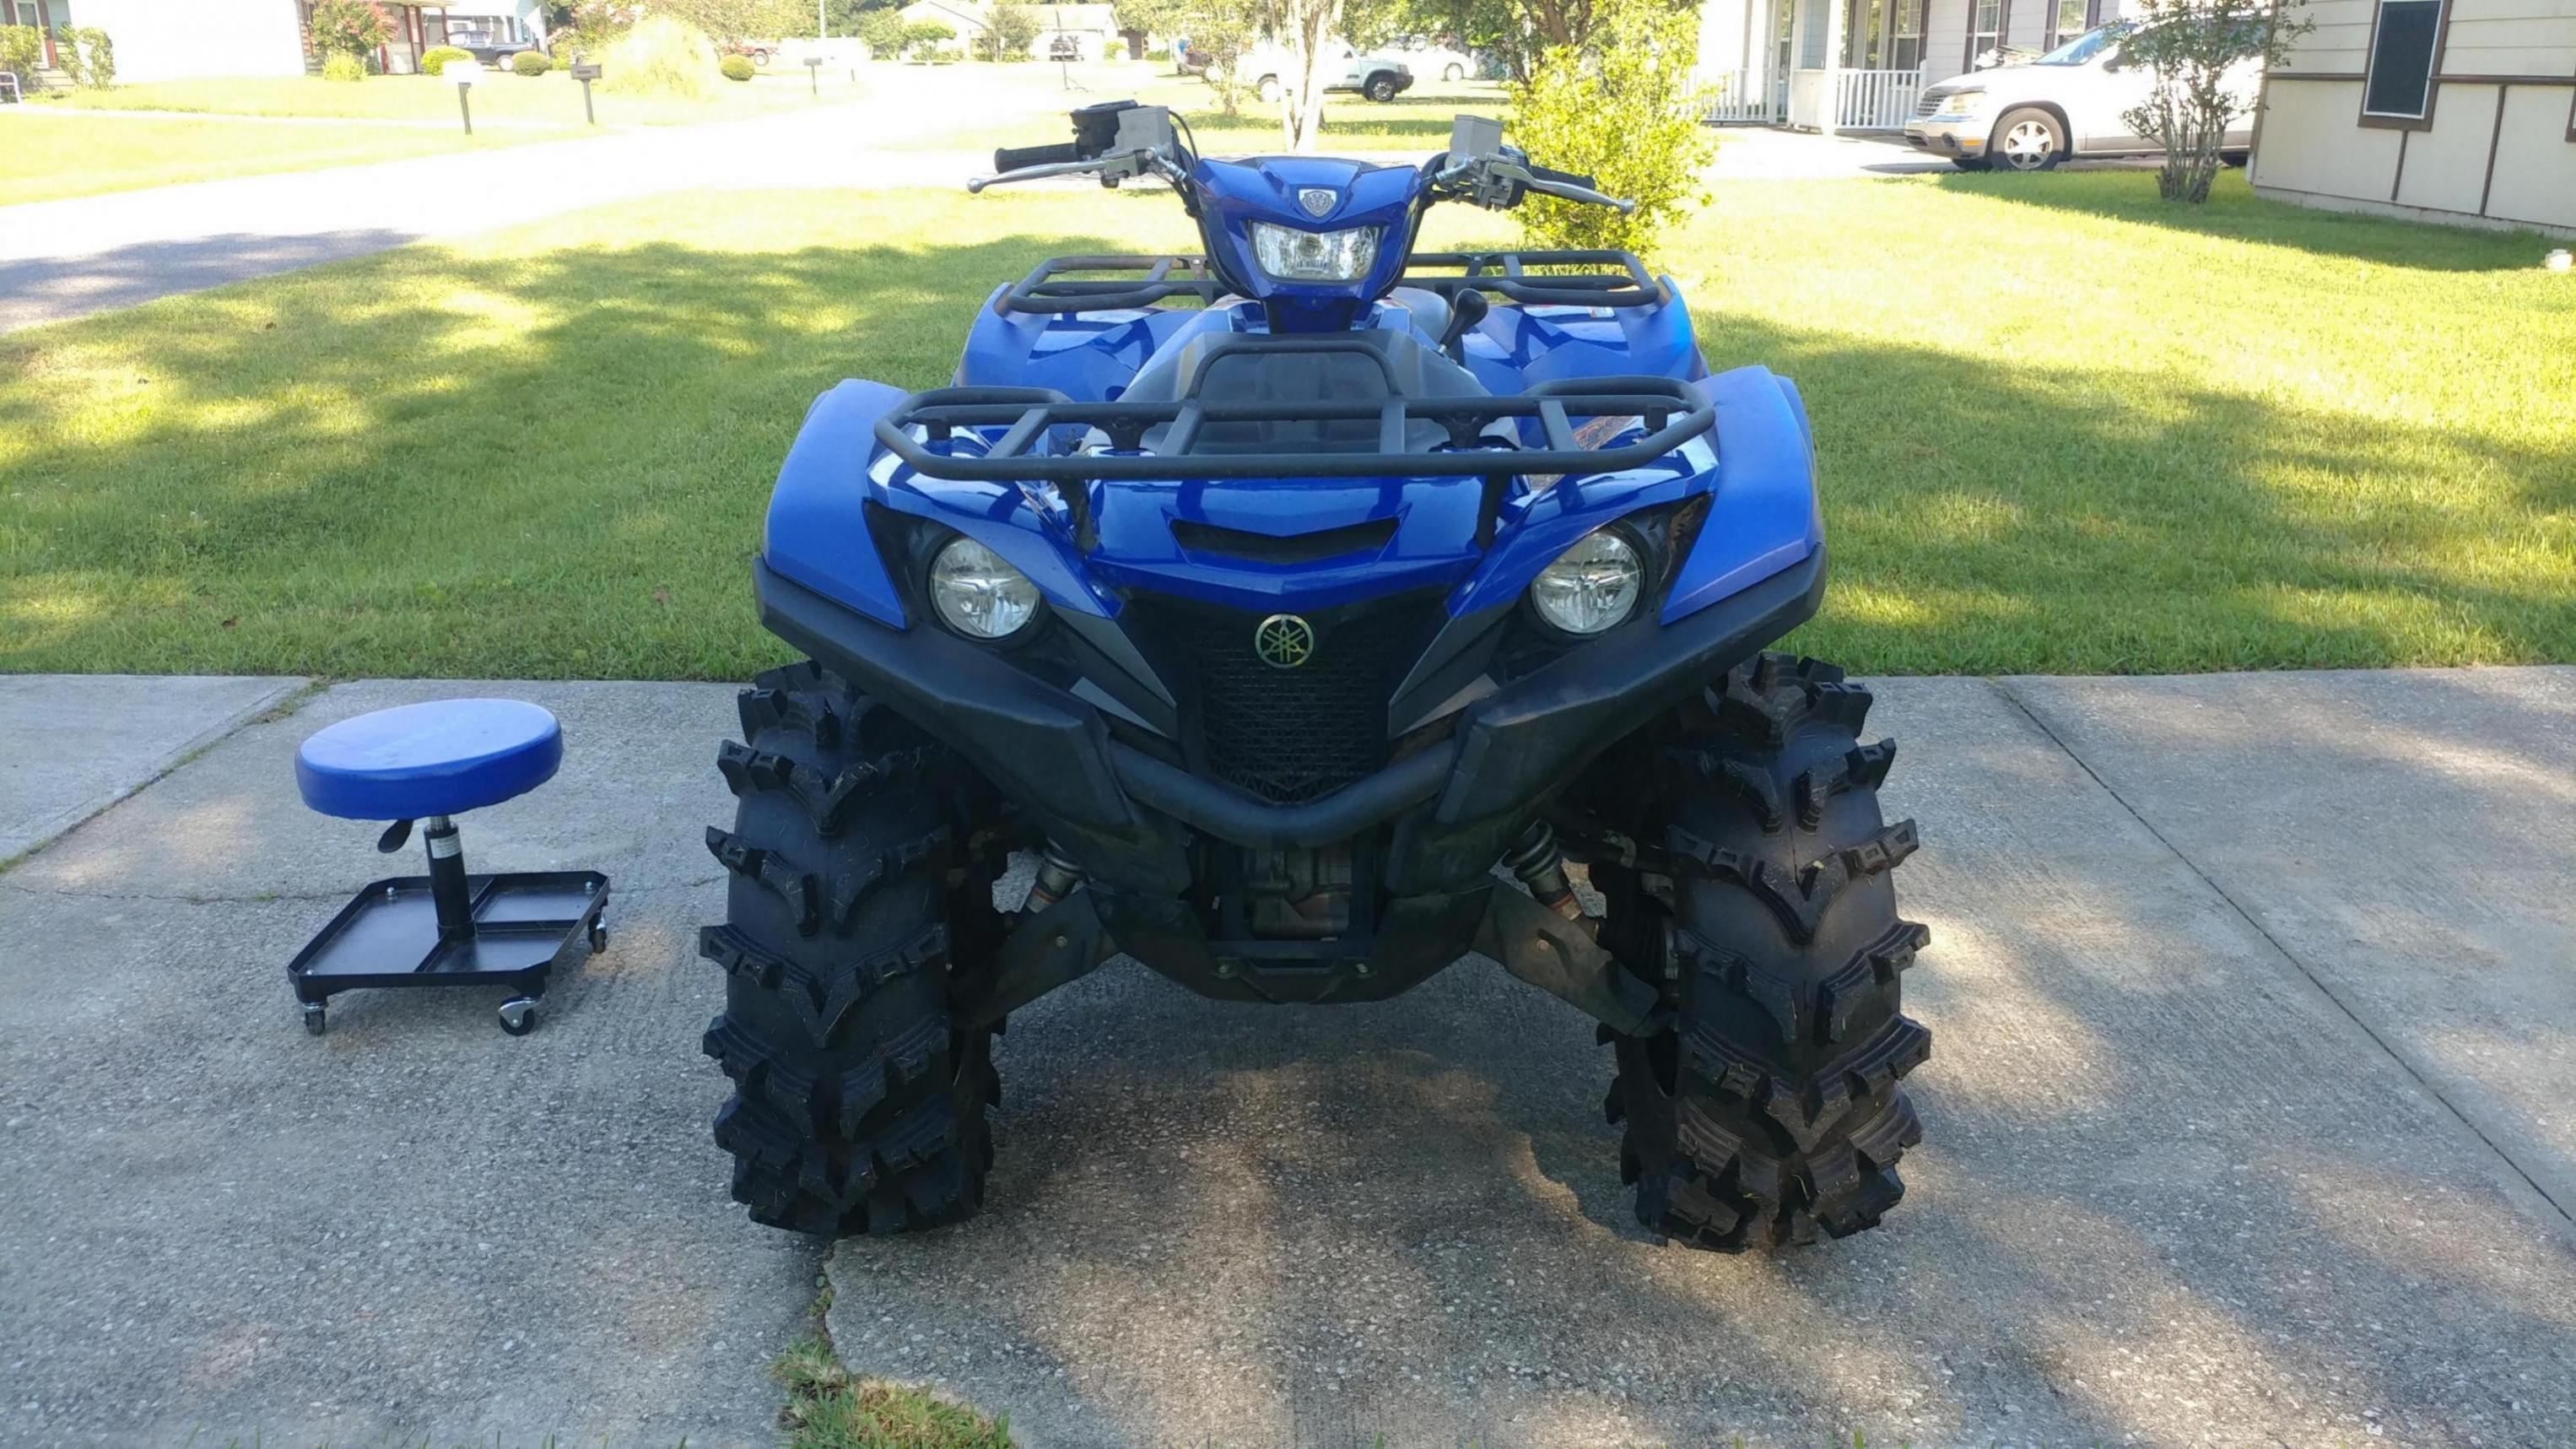 2016 to 2018 grizzly 700 eps - Yamaha Grizzly ATV Forum